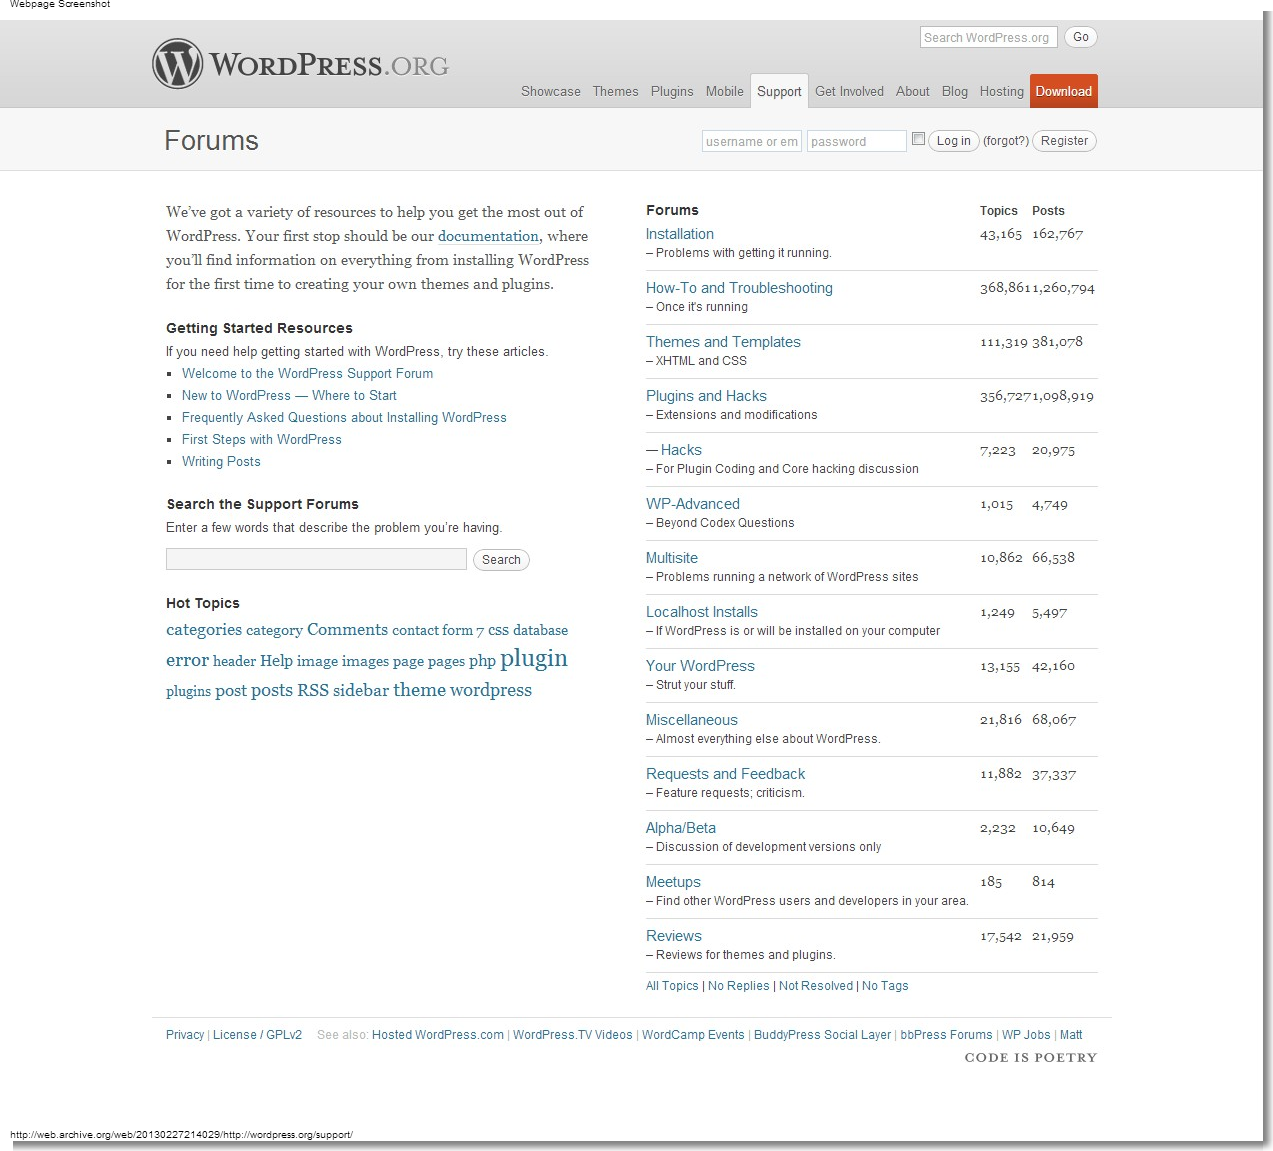 February 27, 2013 - WordPress - Support